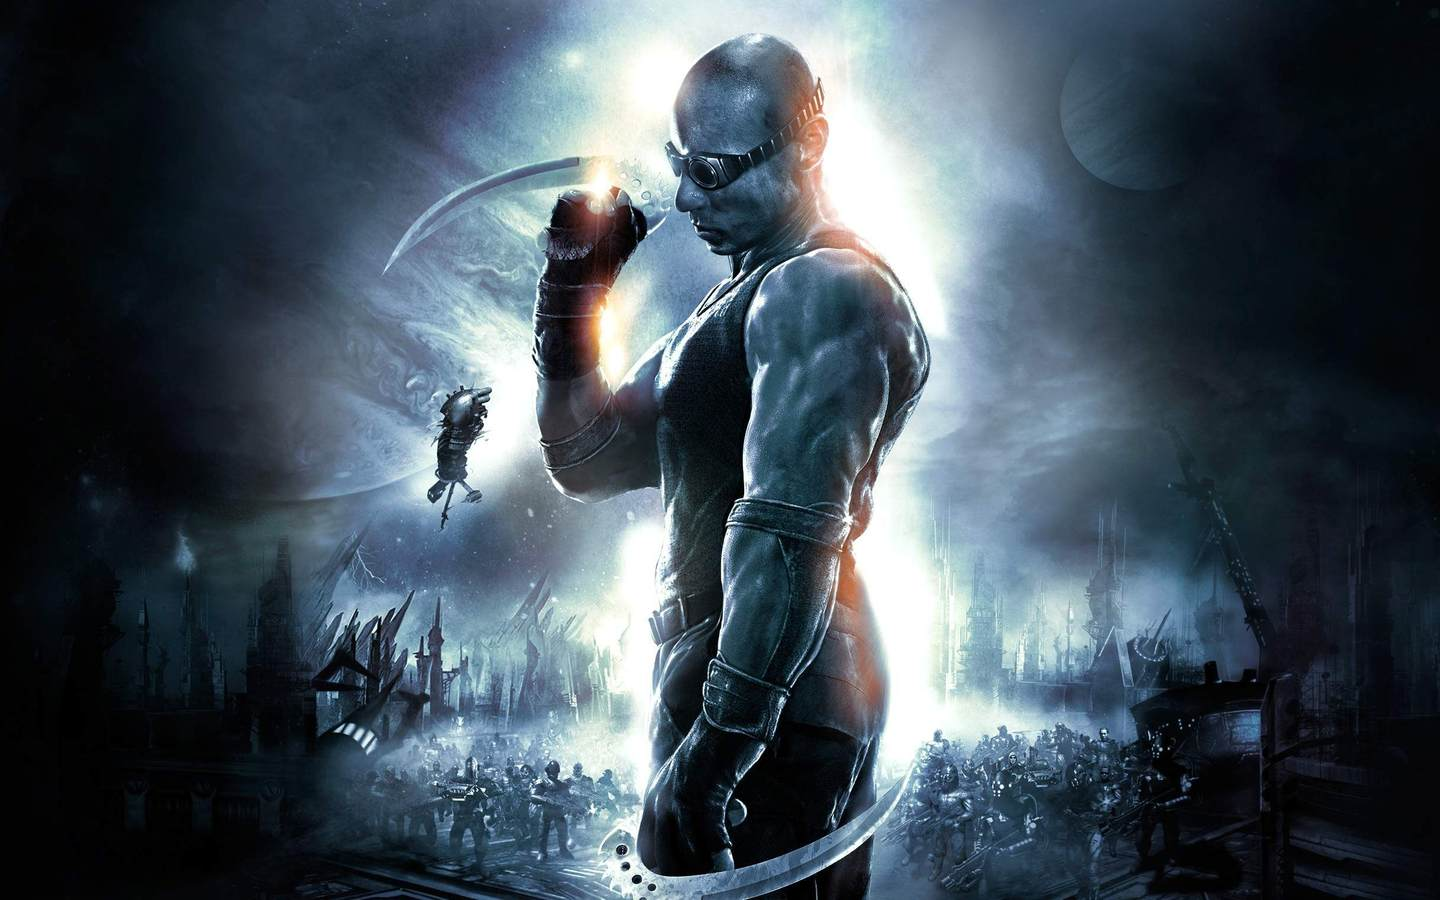 Арт к игре The Chronicles of Riddick: Assault on Dark Athena